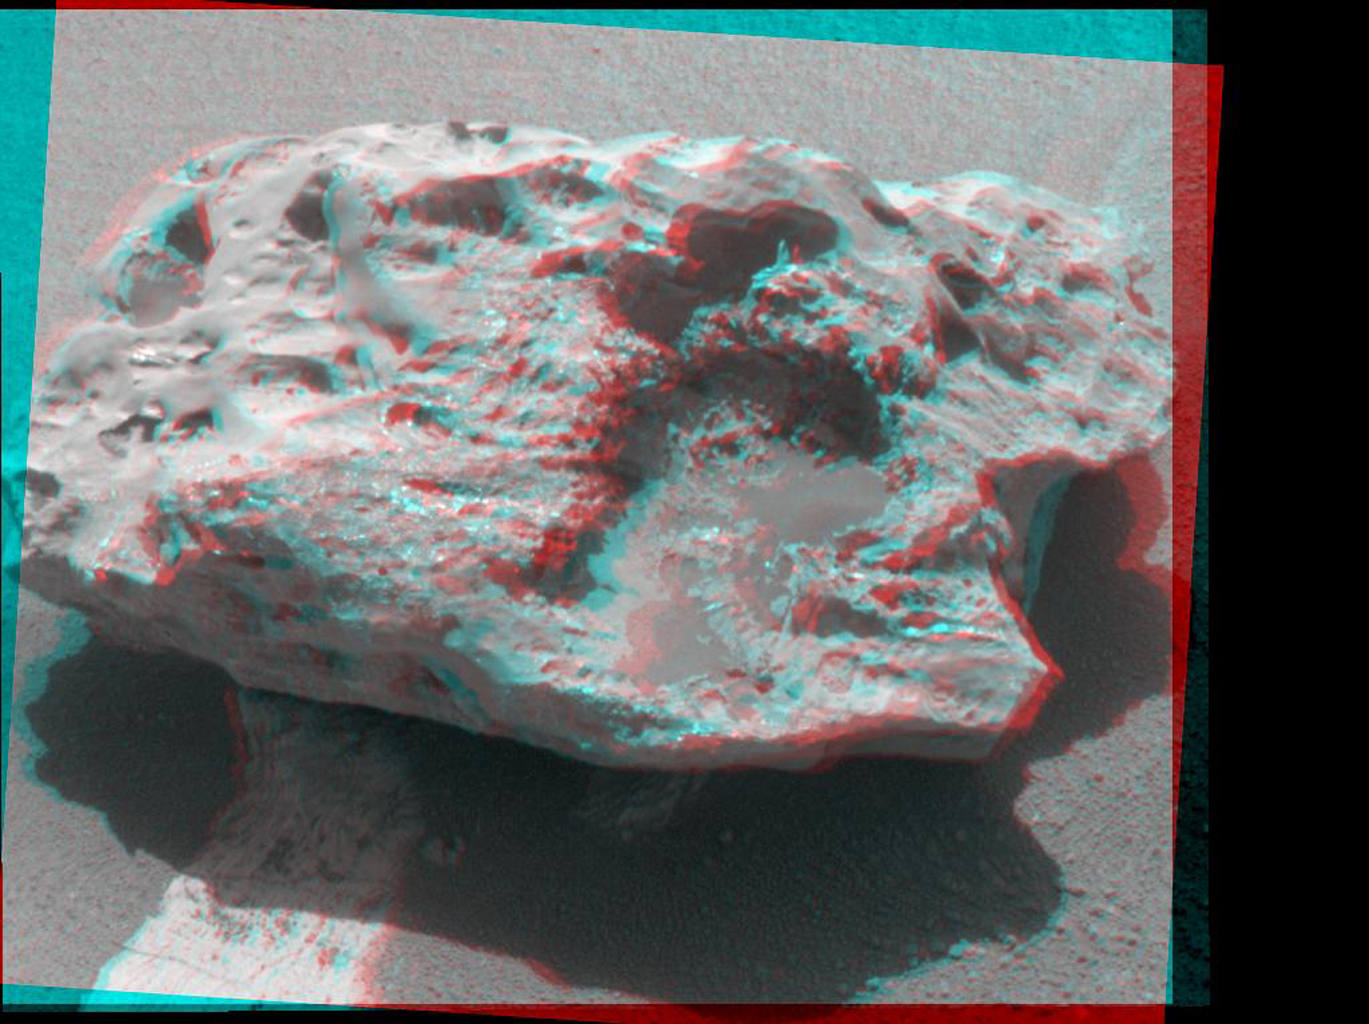 Composition measurements by NASA's Mars Exploration Rover Opportunity confirm that this rock on the Martian surface is an iron-nickel meteorite. 3D glasses are necessary to view this image.